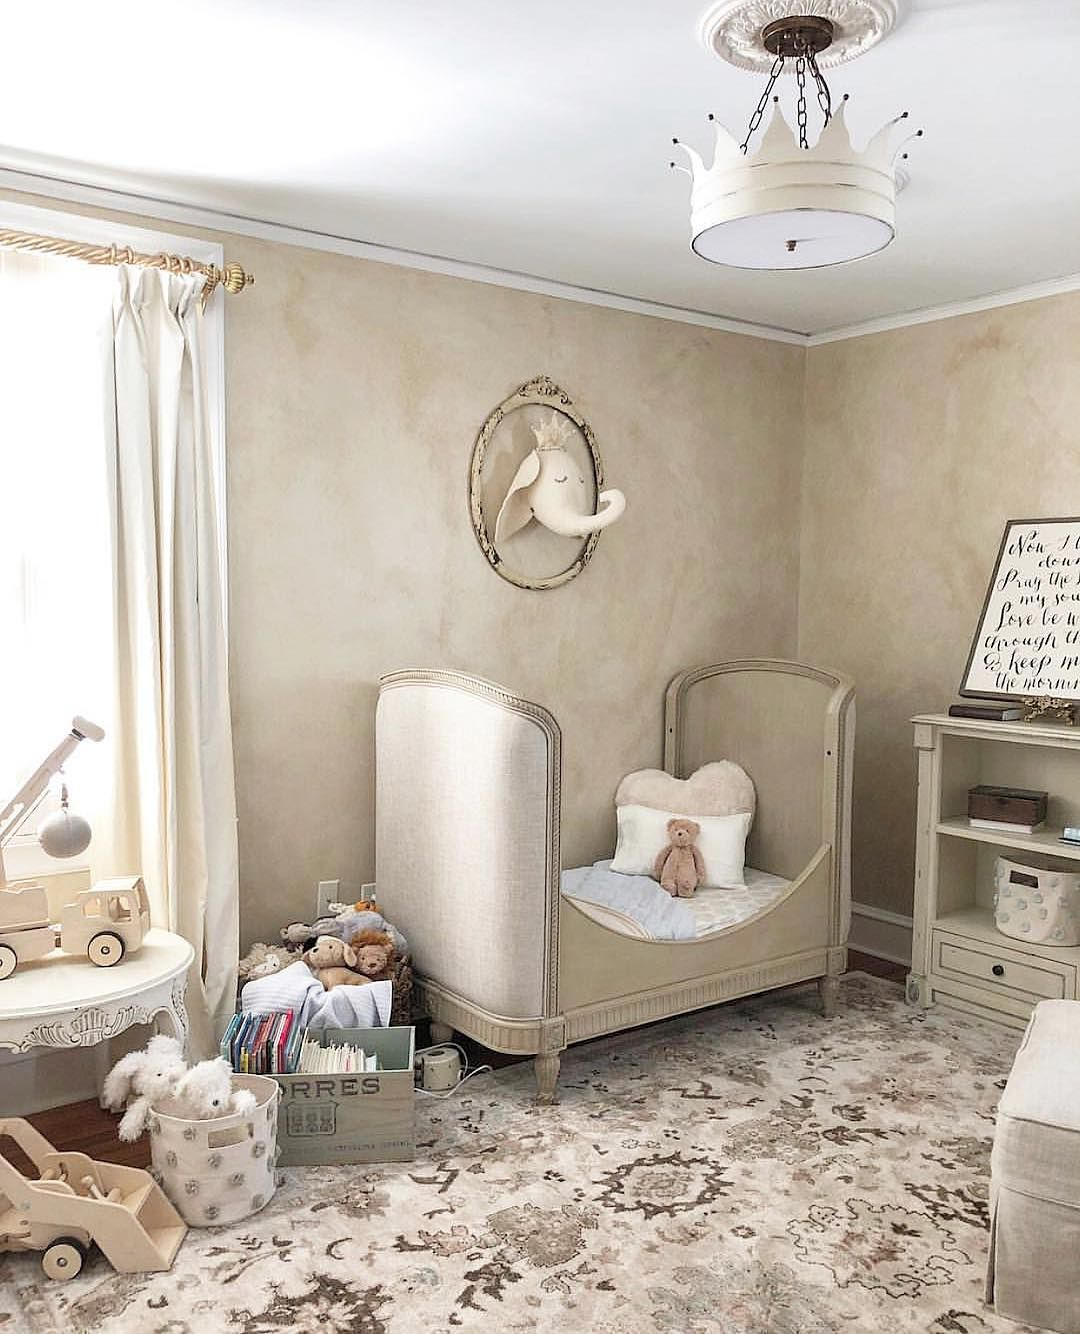 Best Home Decor Stores In Michigan In 2020 Trending Decor Home